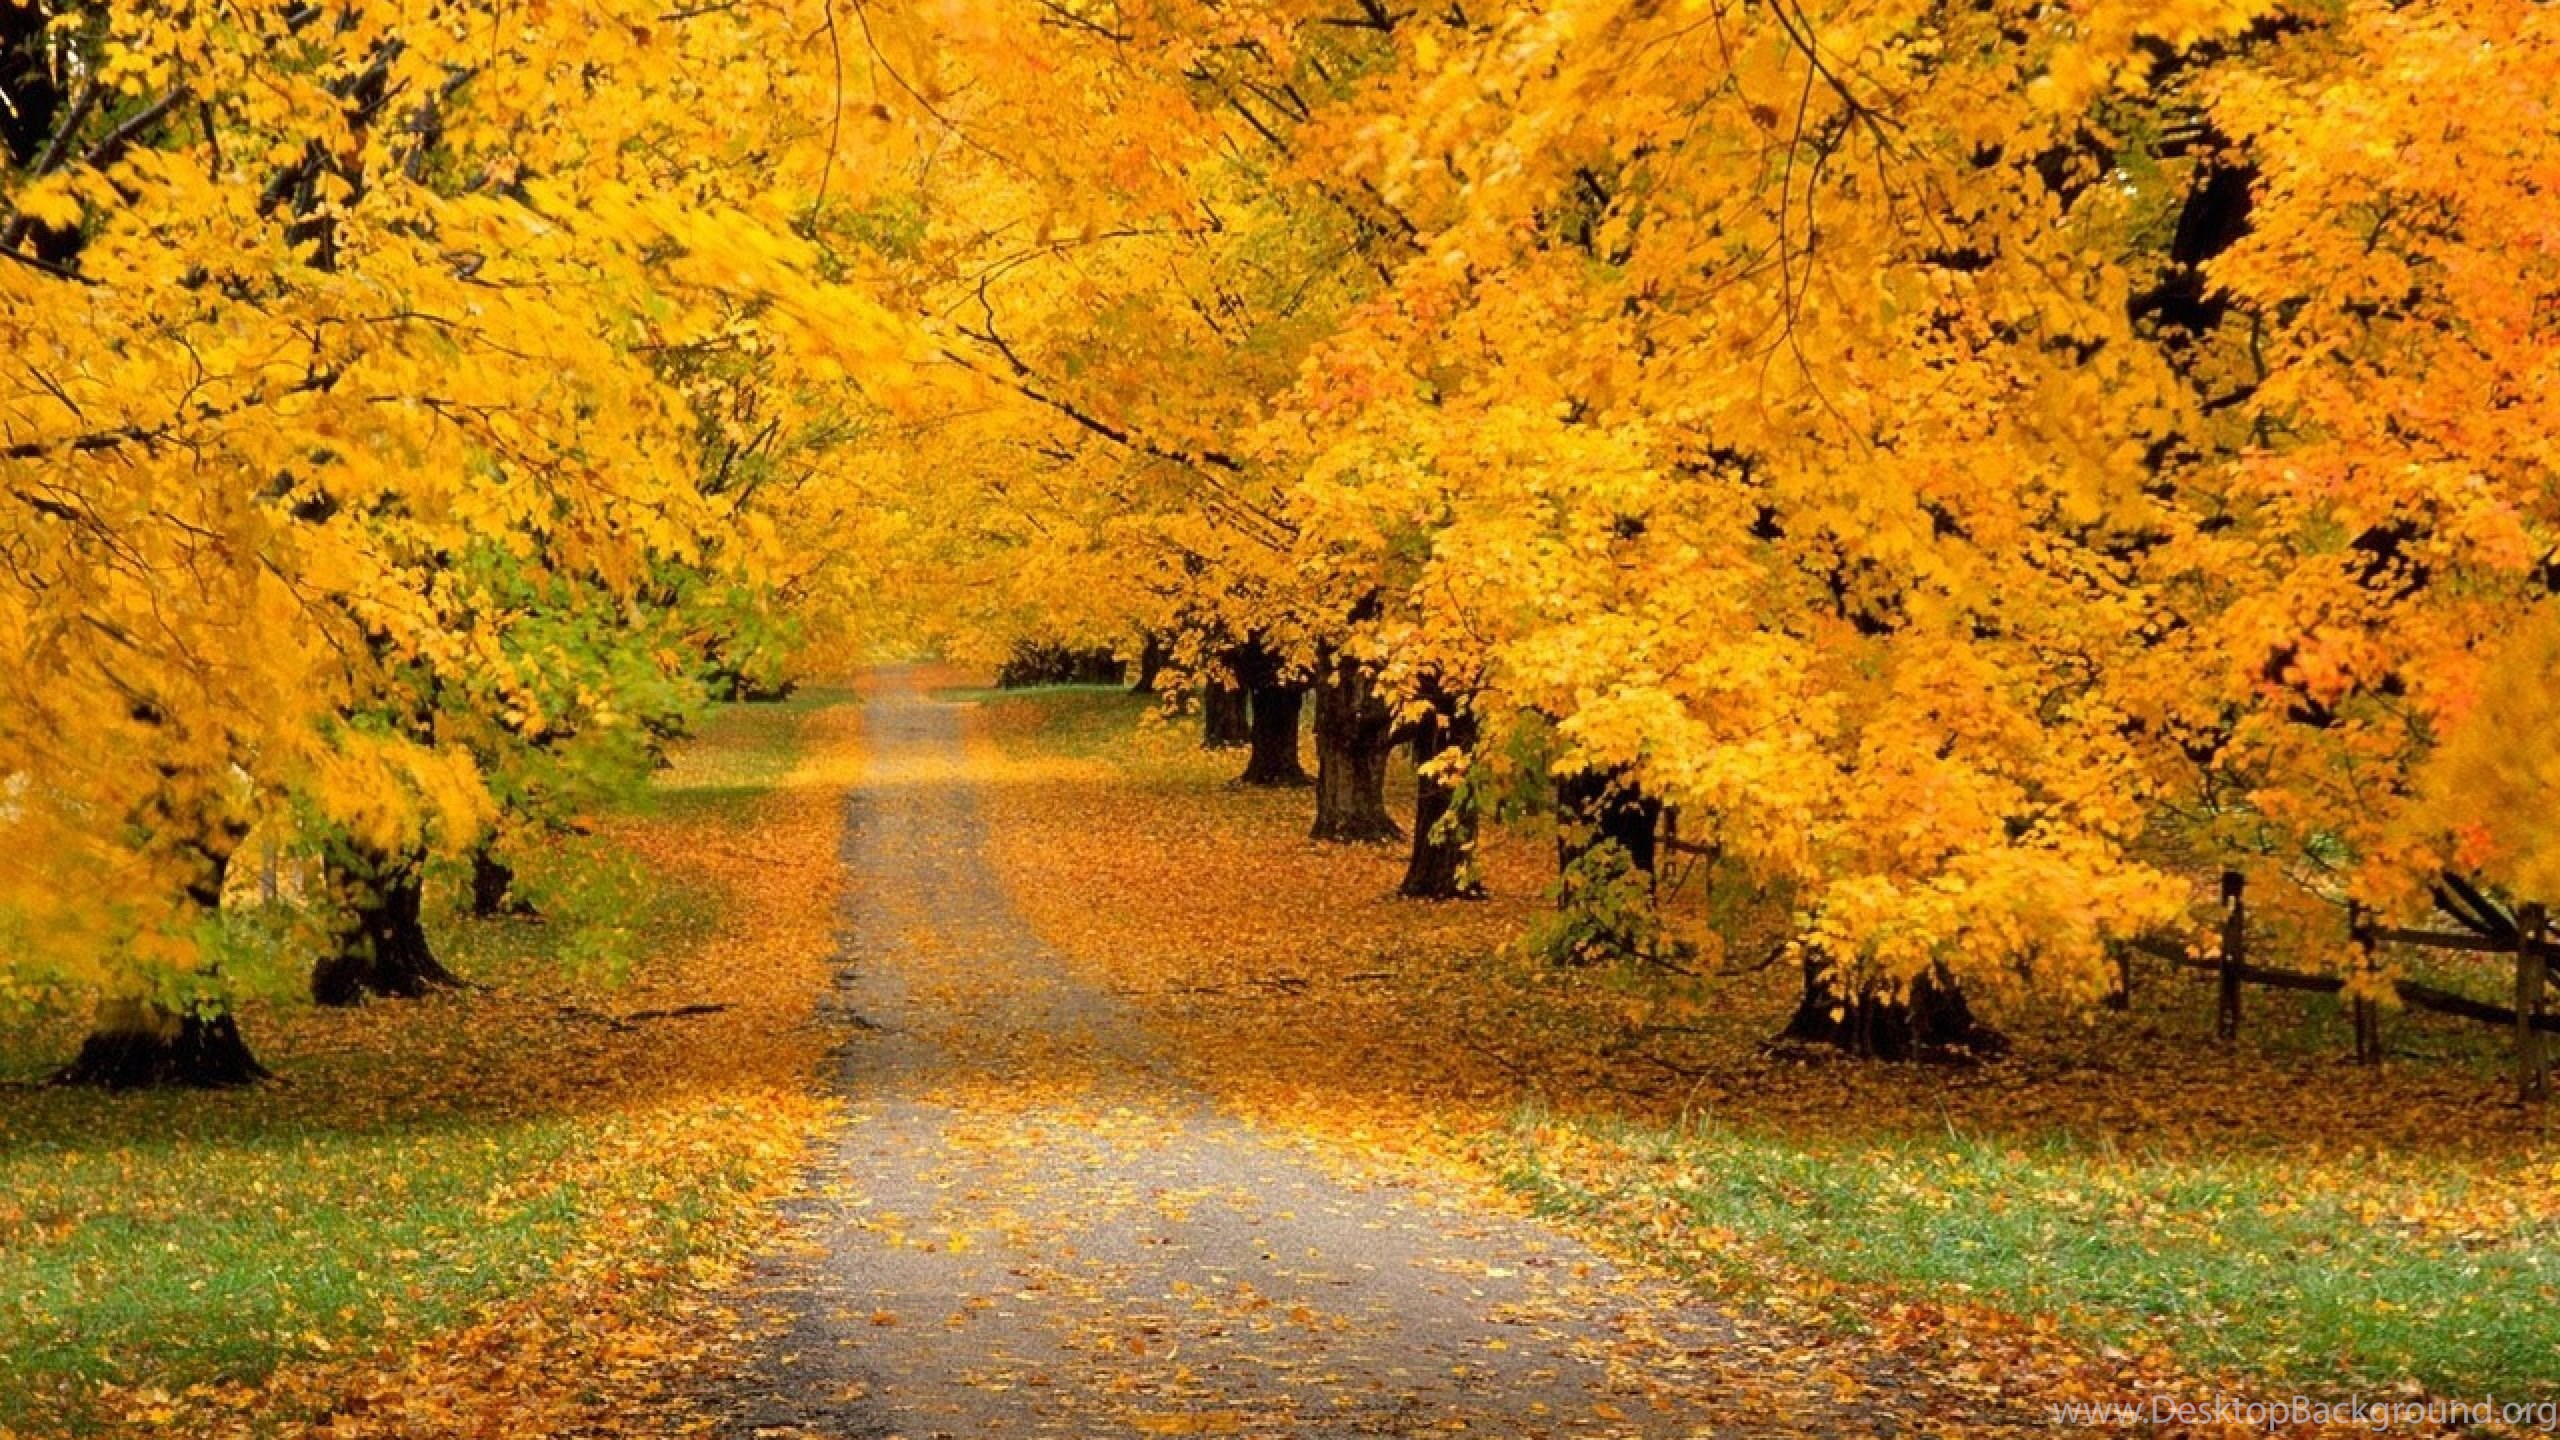 autumn leaves wallpaper android download wallpapers 2560x1600 trees park autumn leaves yellow